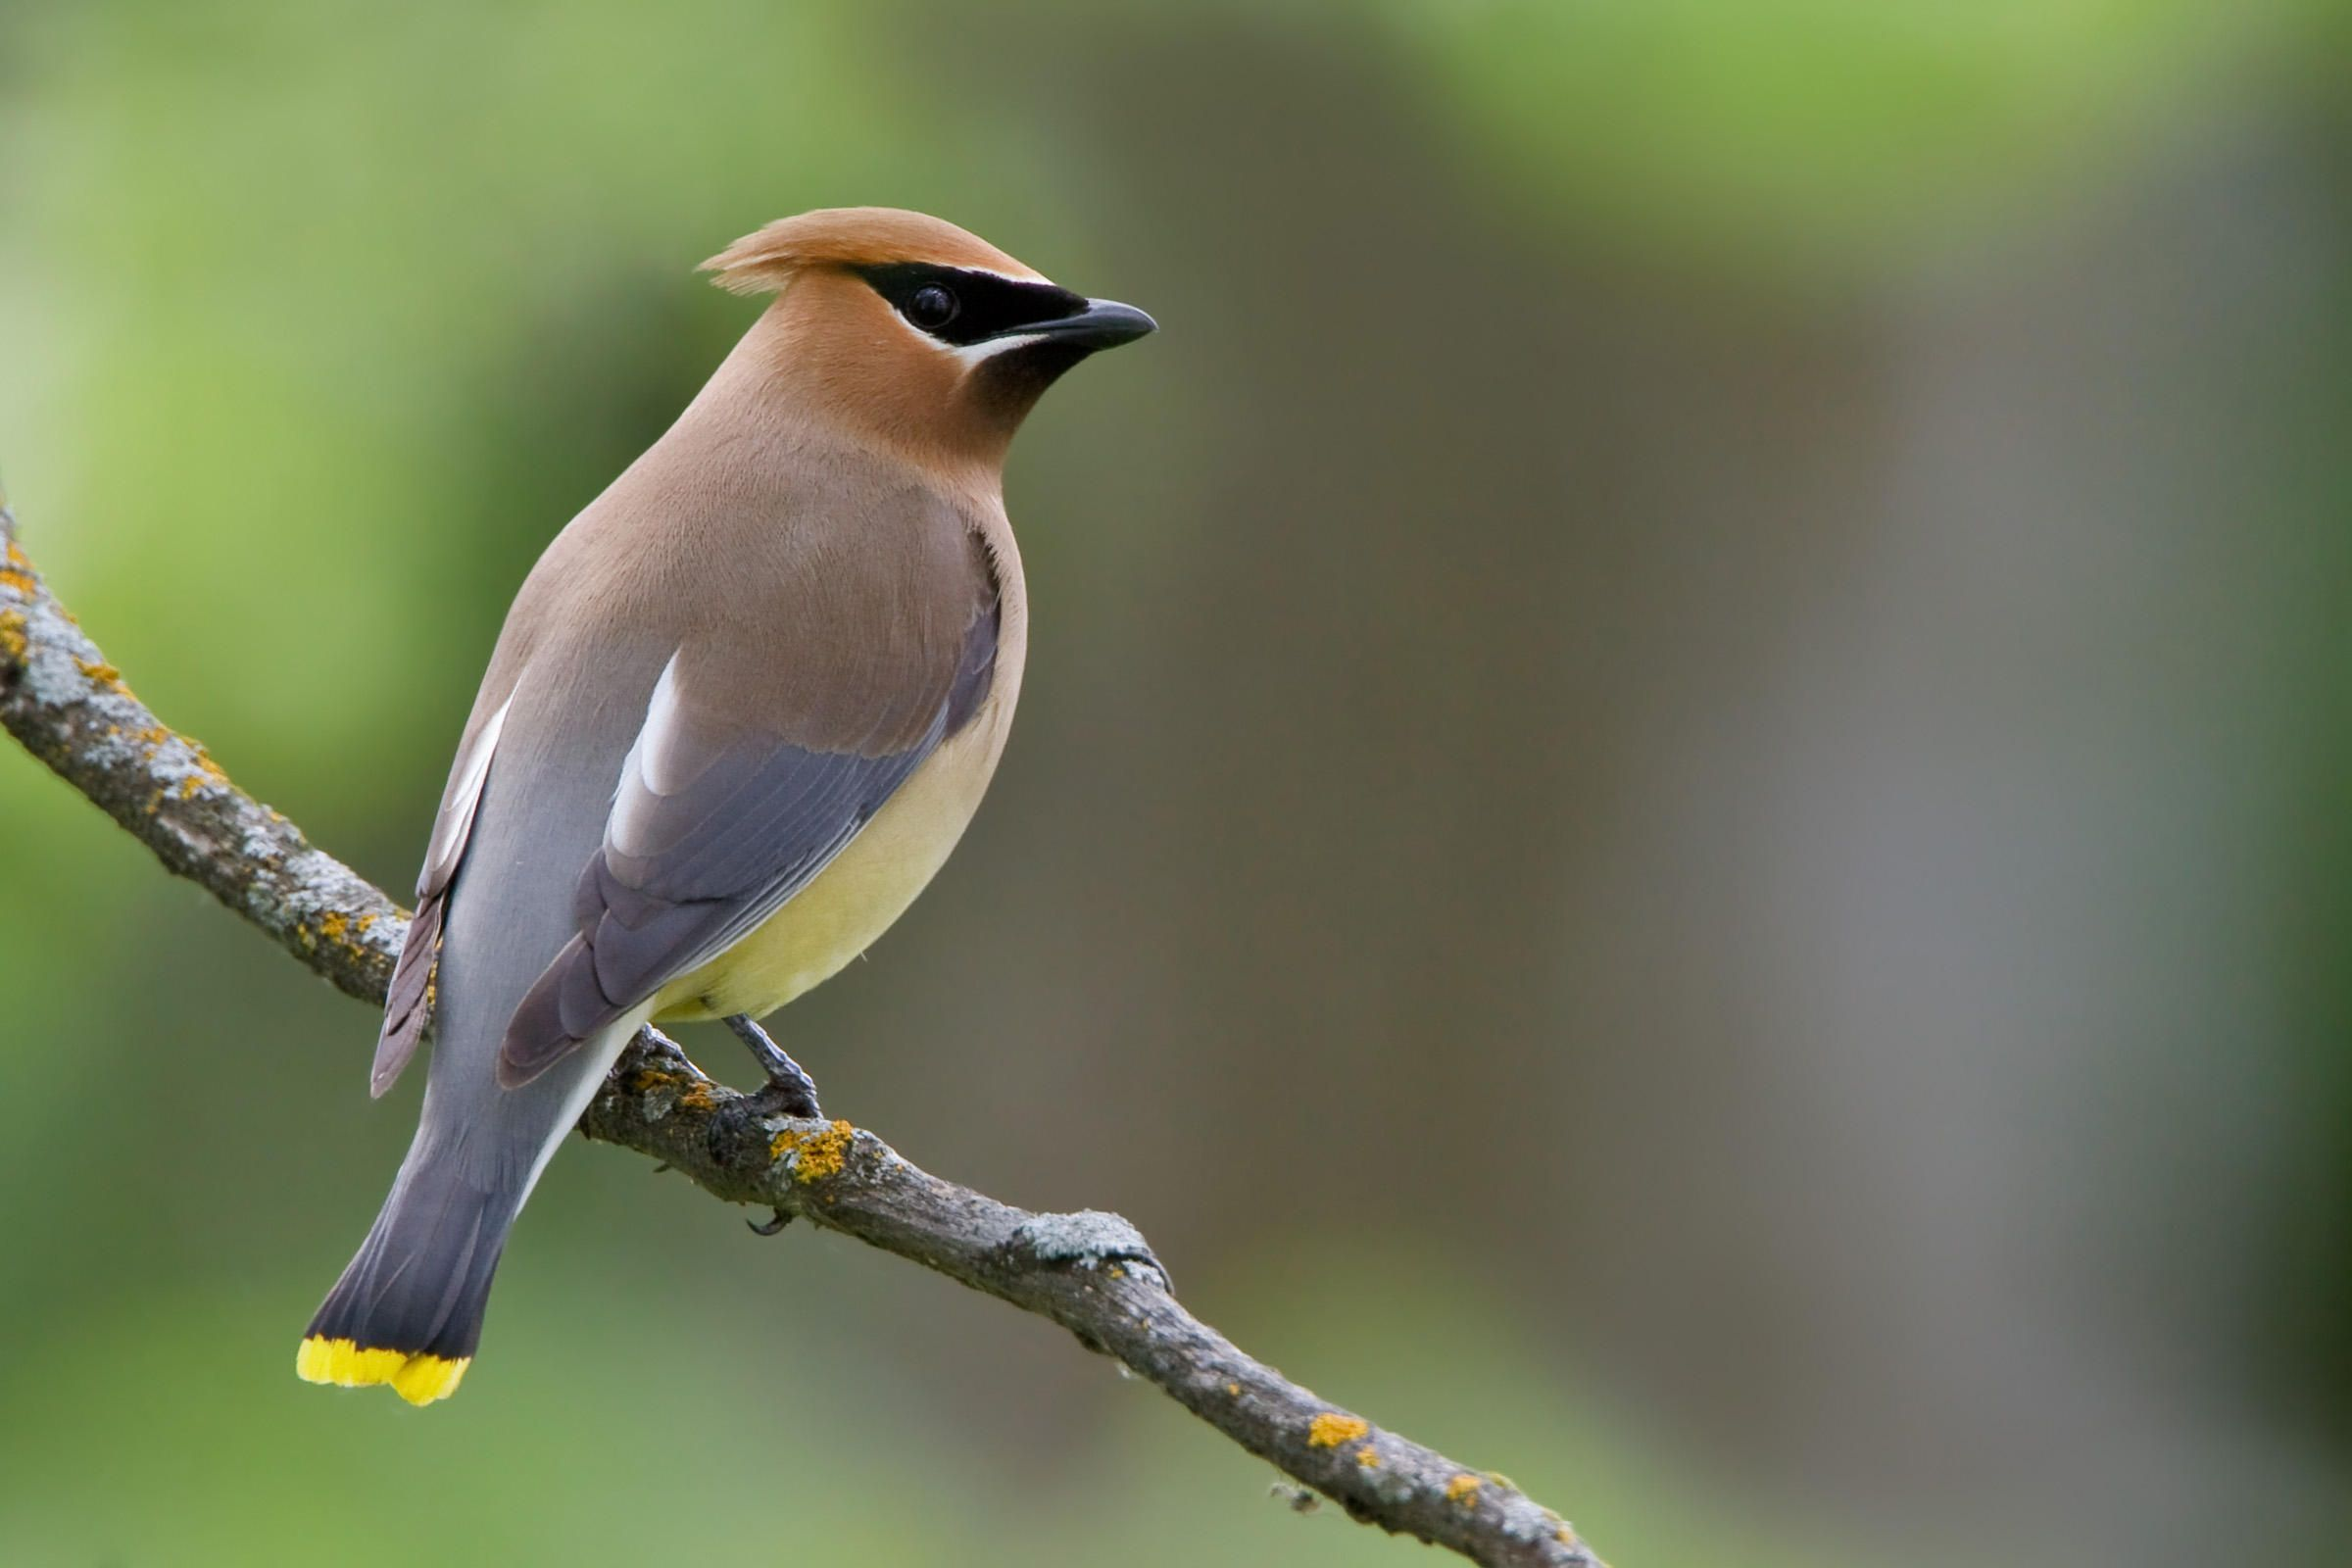 Pin by Kristen U S on MY Backyard Birds Cedar waxwing Bird 2400x1600